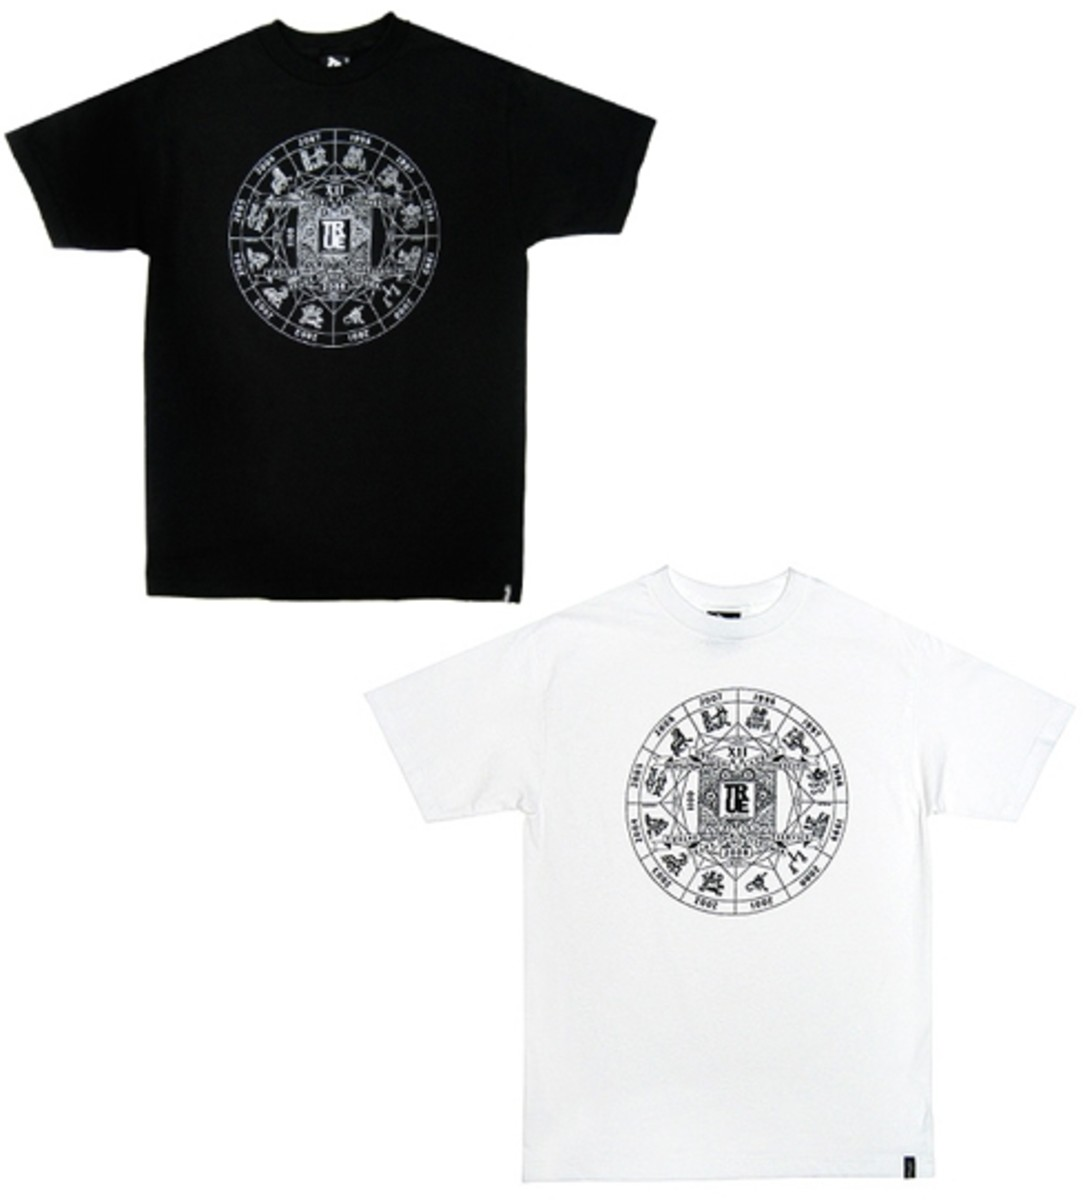 TRUE - 12th Anniversary T-Shirts